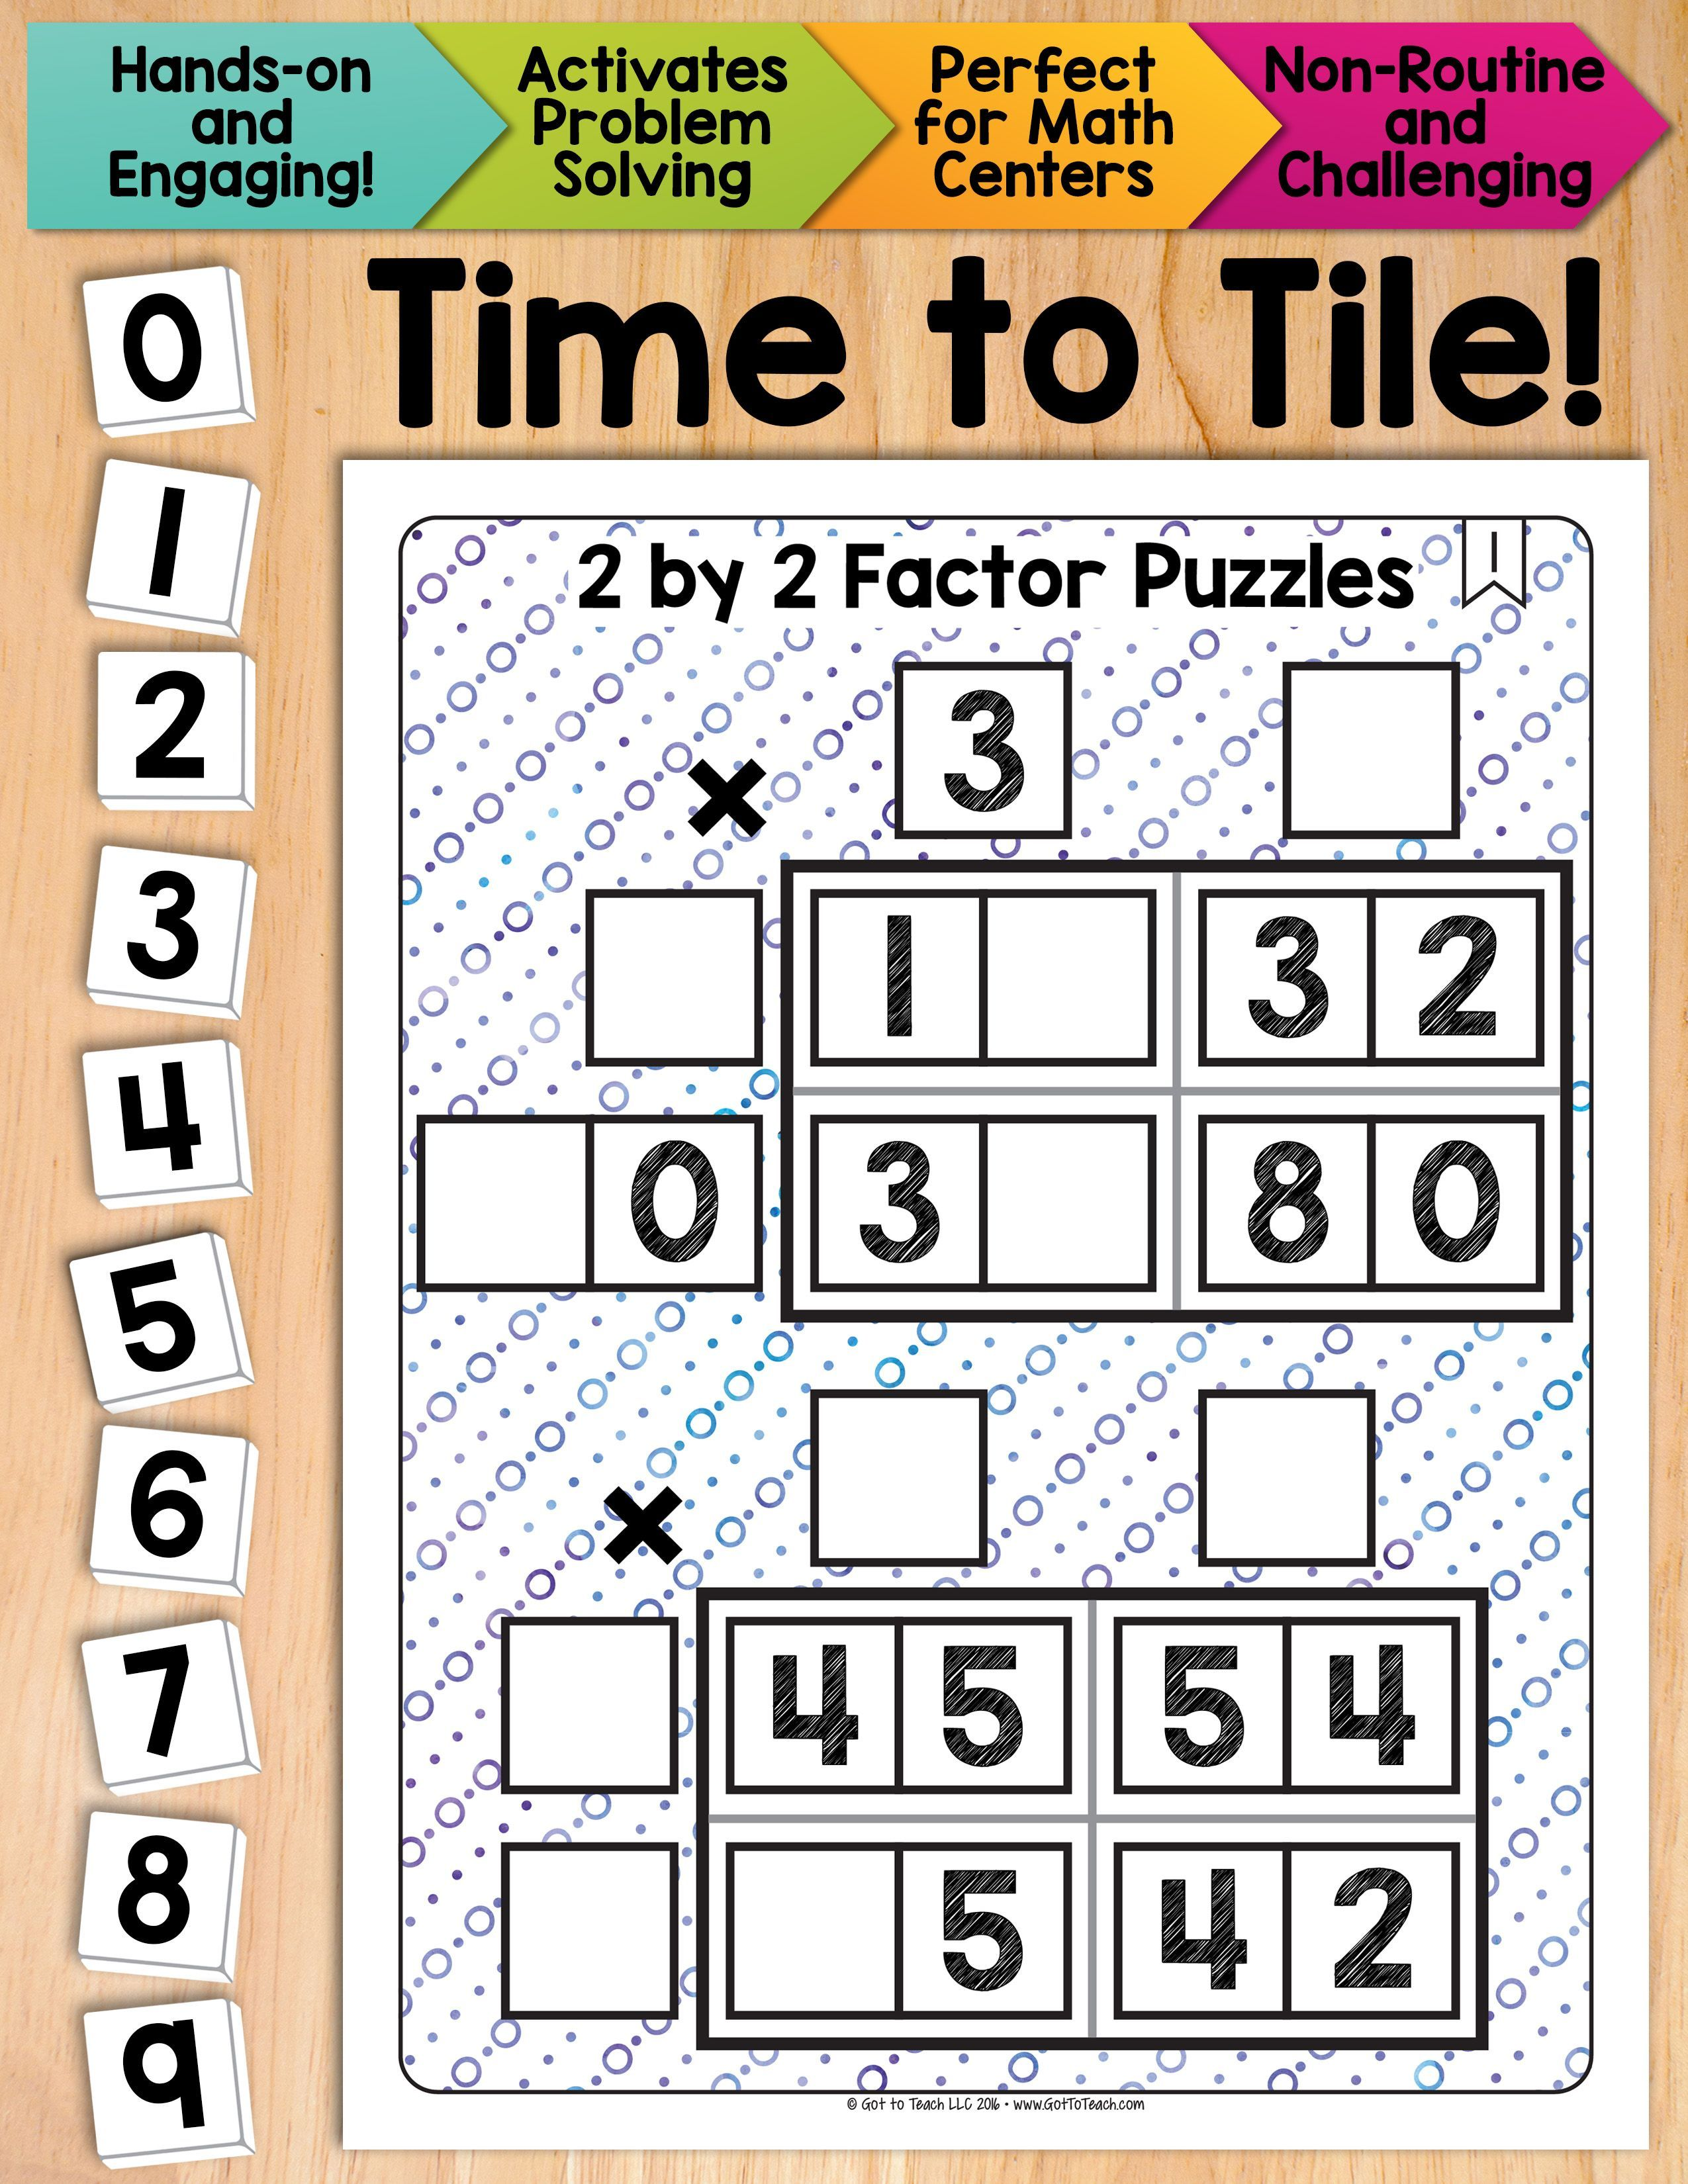 Math Tiles 2 By 2 Factor Puzzles Hands On Tactile